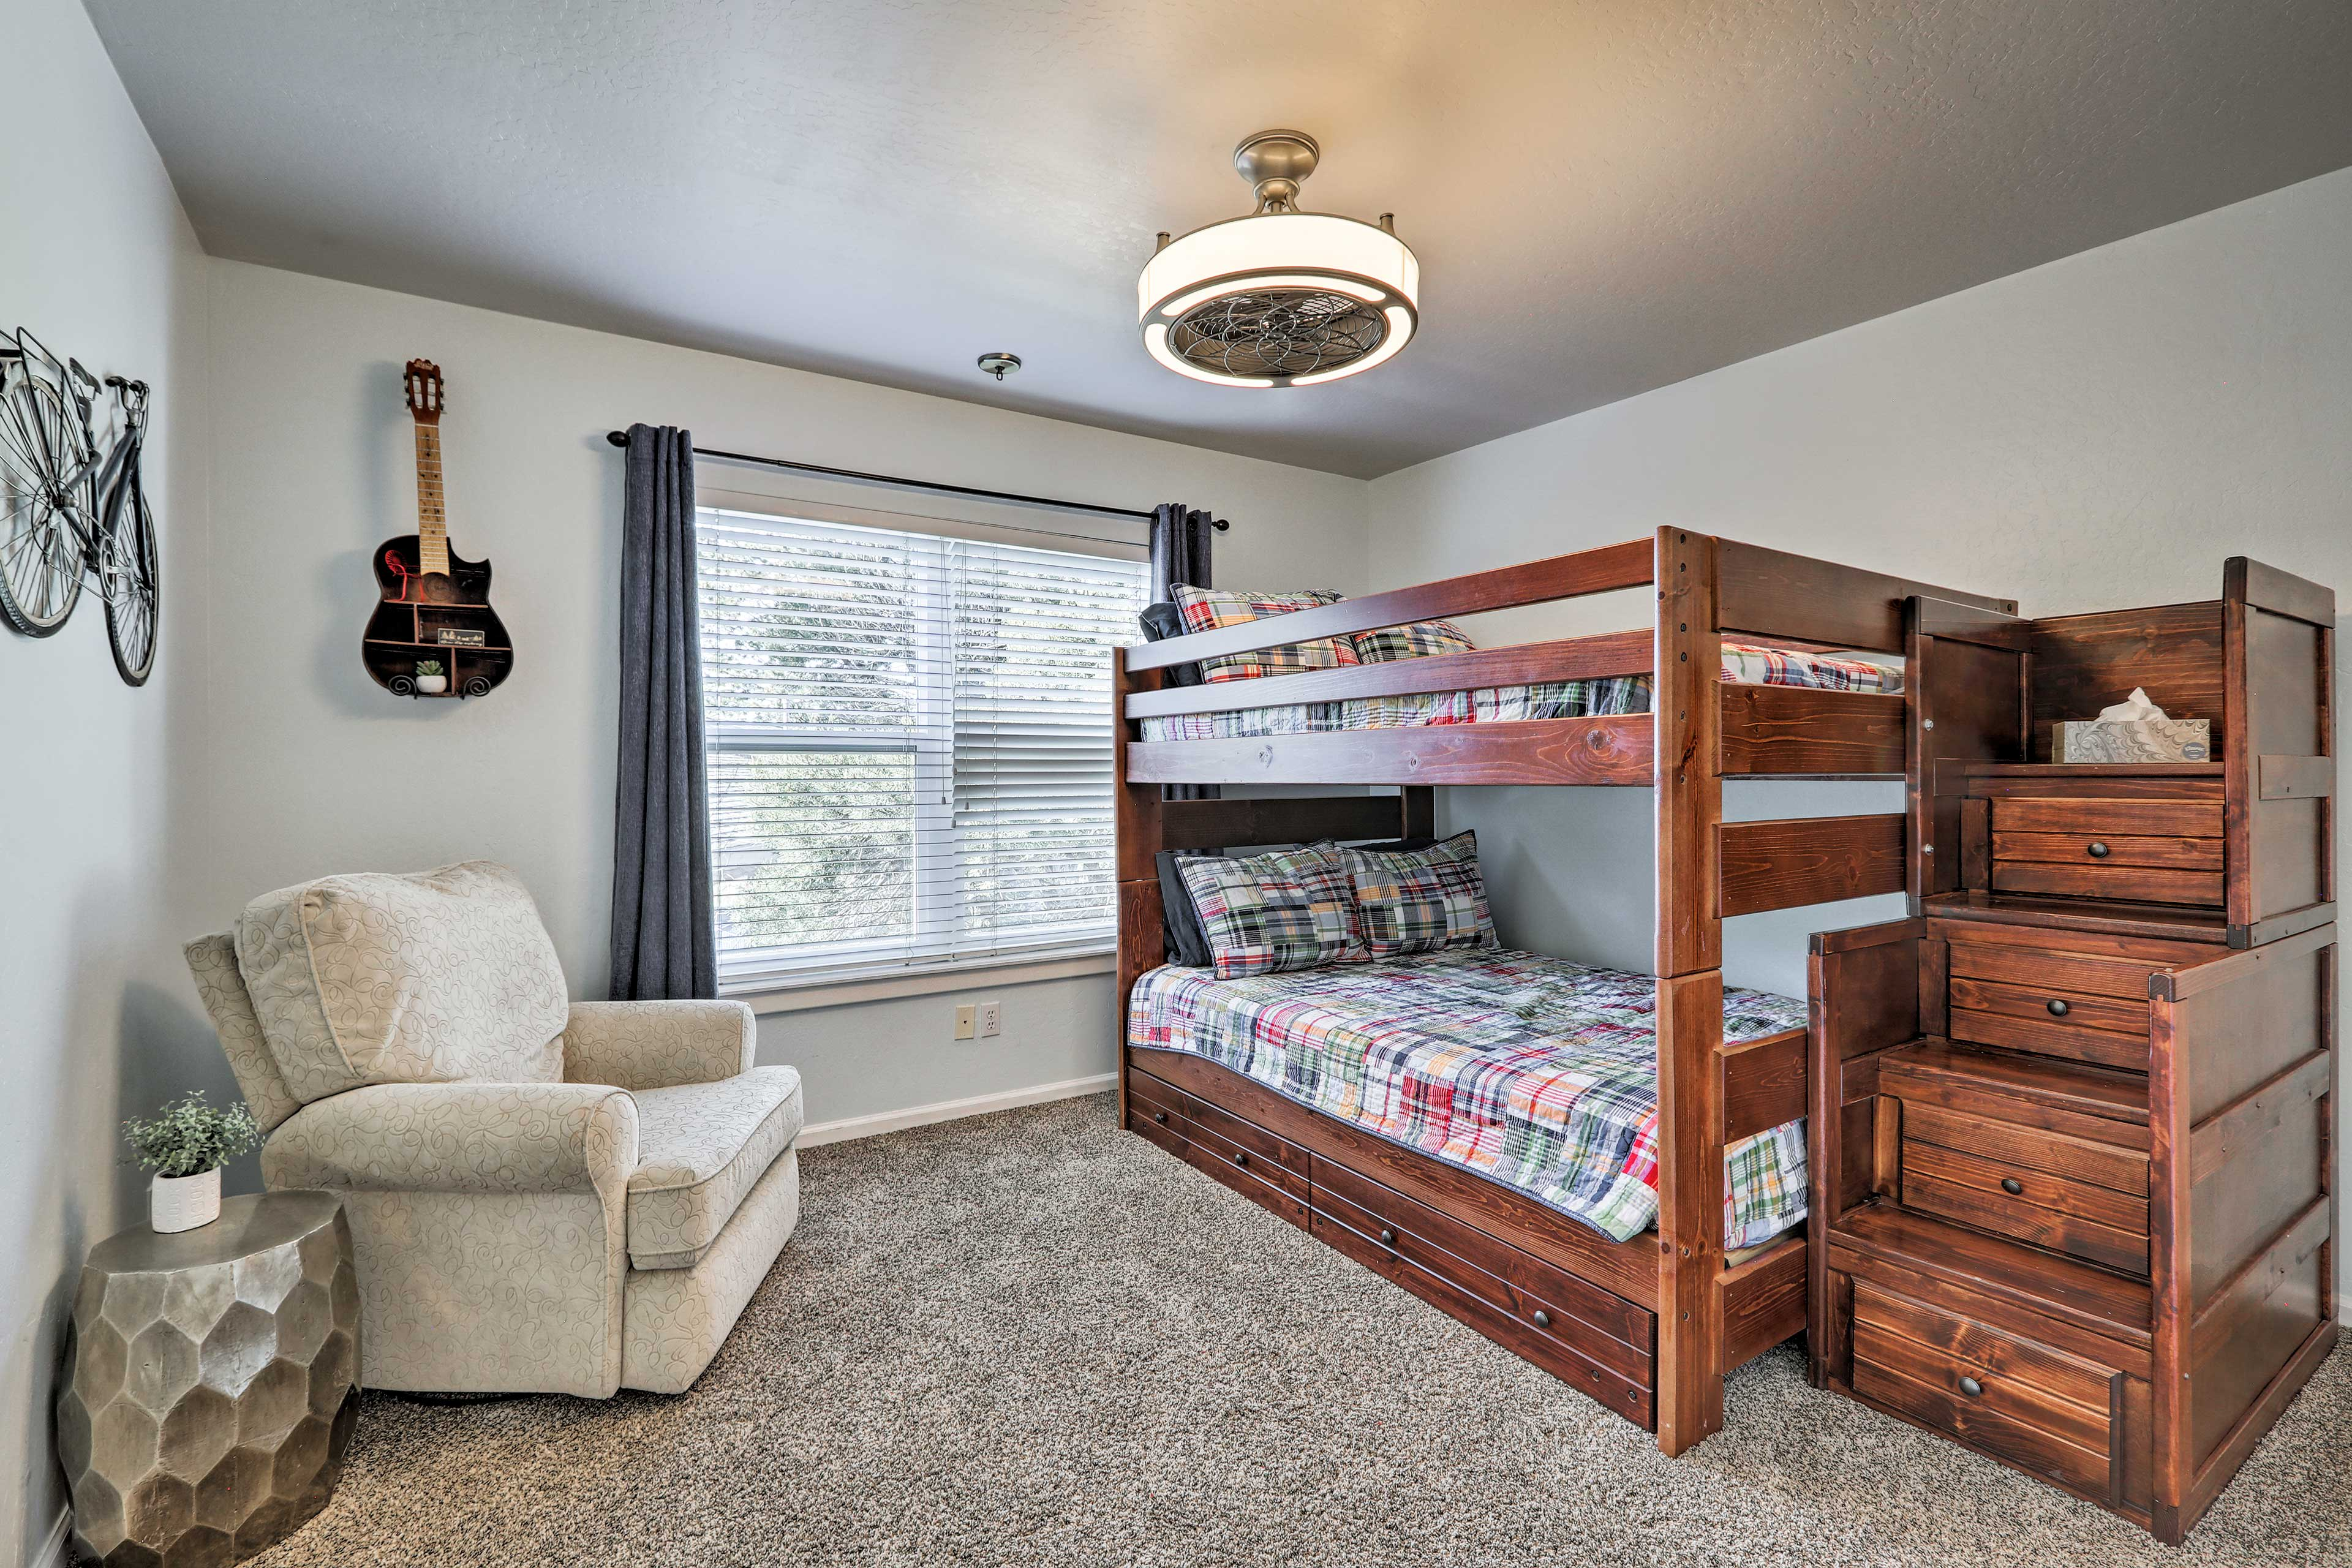 The fourth bedroom is equipped with a twin-over-full bunk bed and twin trundle.